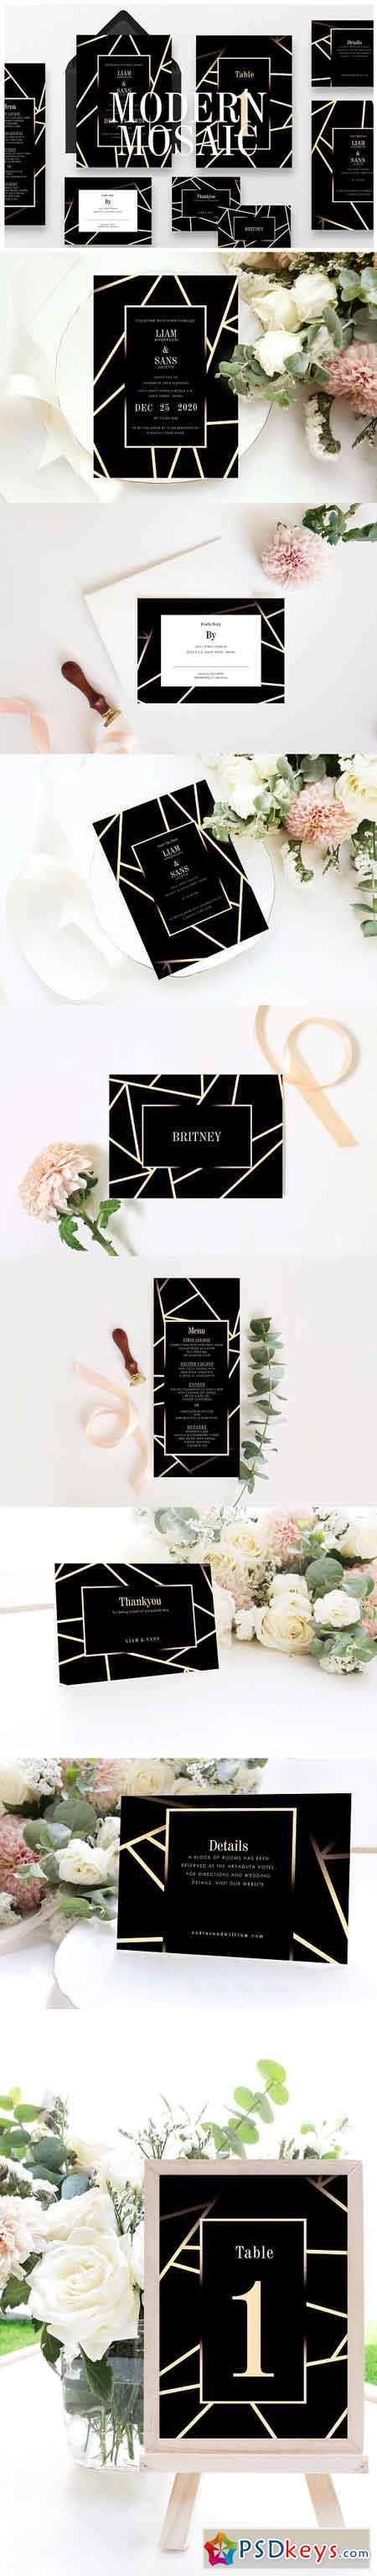 Modern Mosaic Wedding Suite Ac 127 3187490